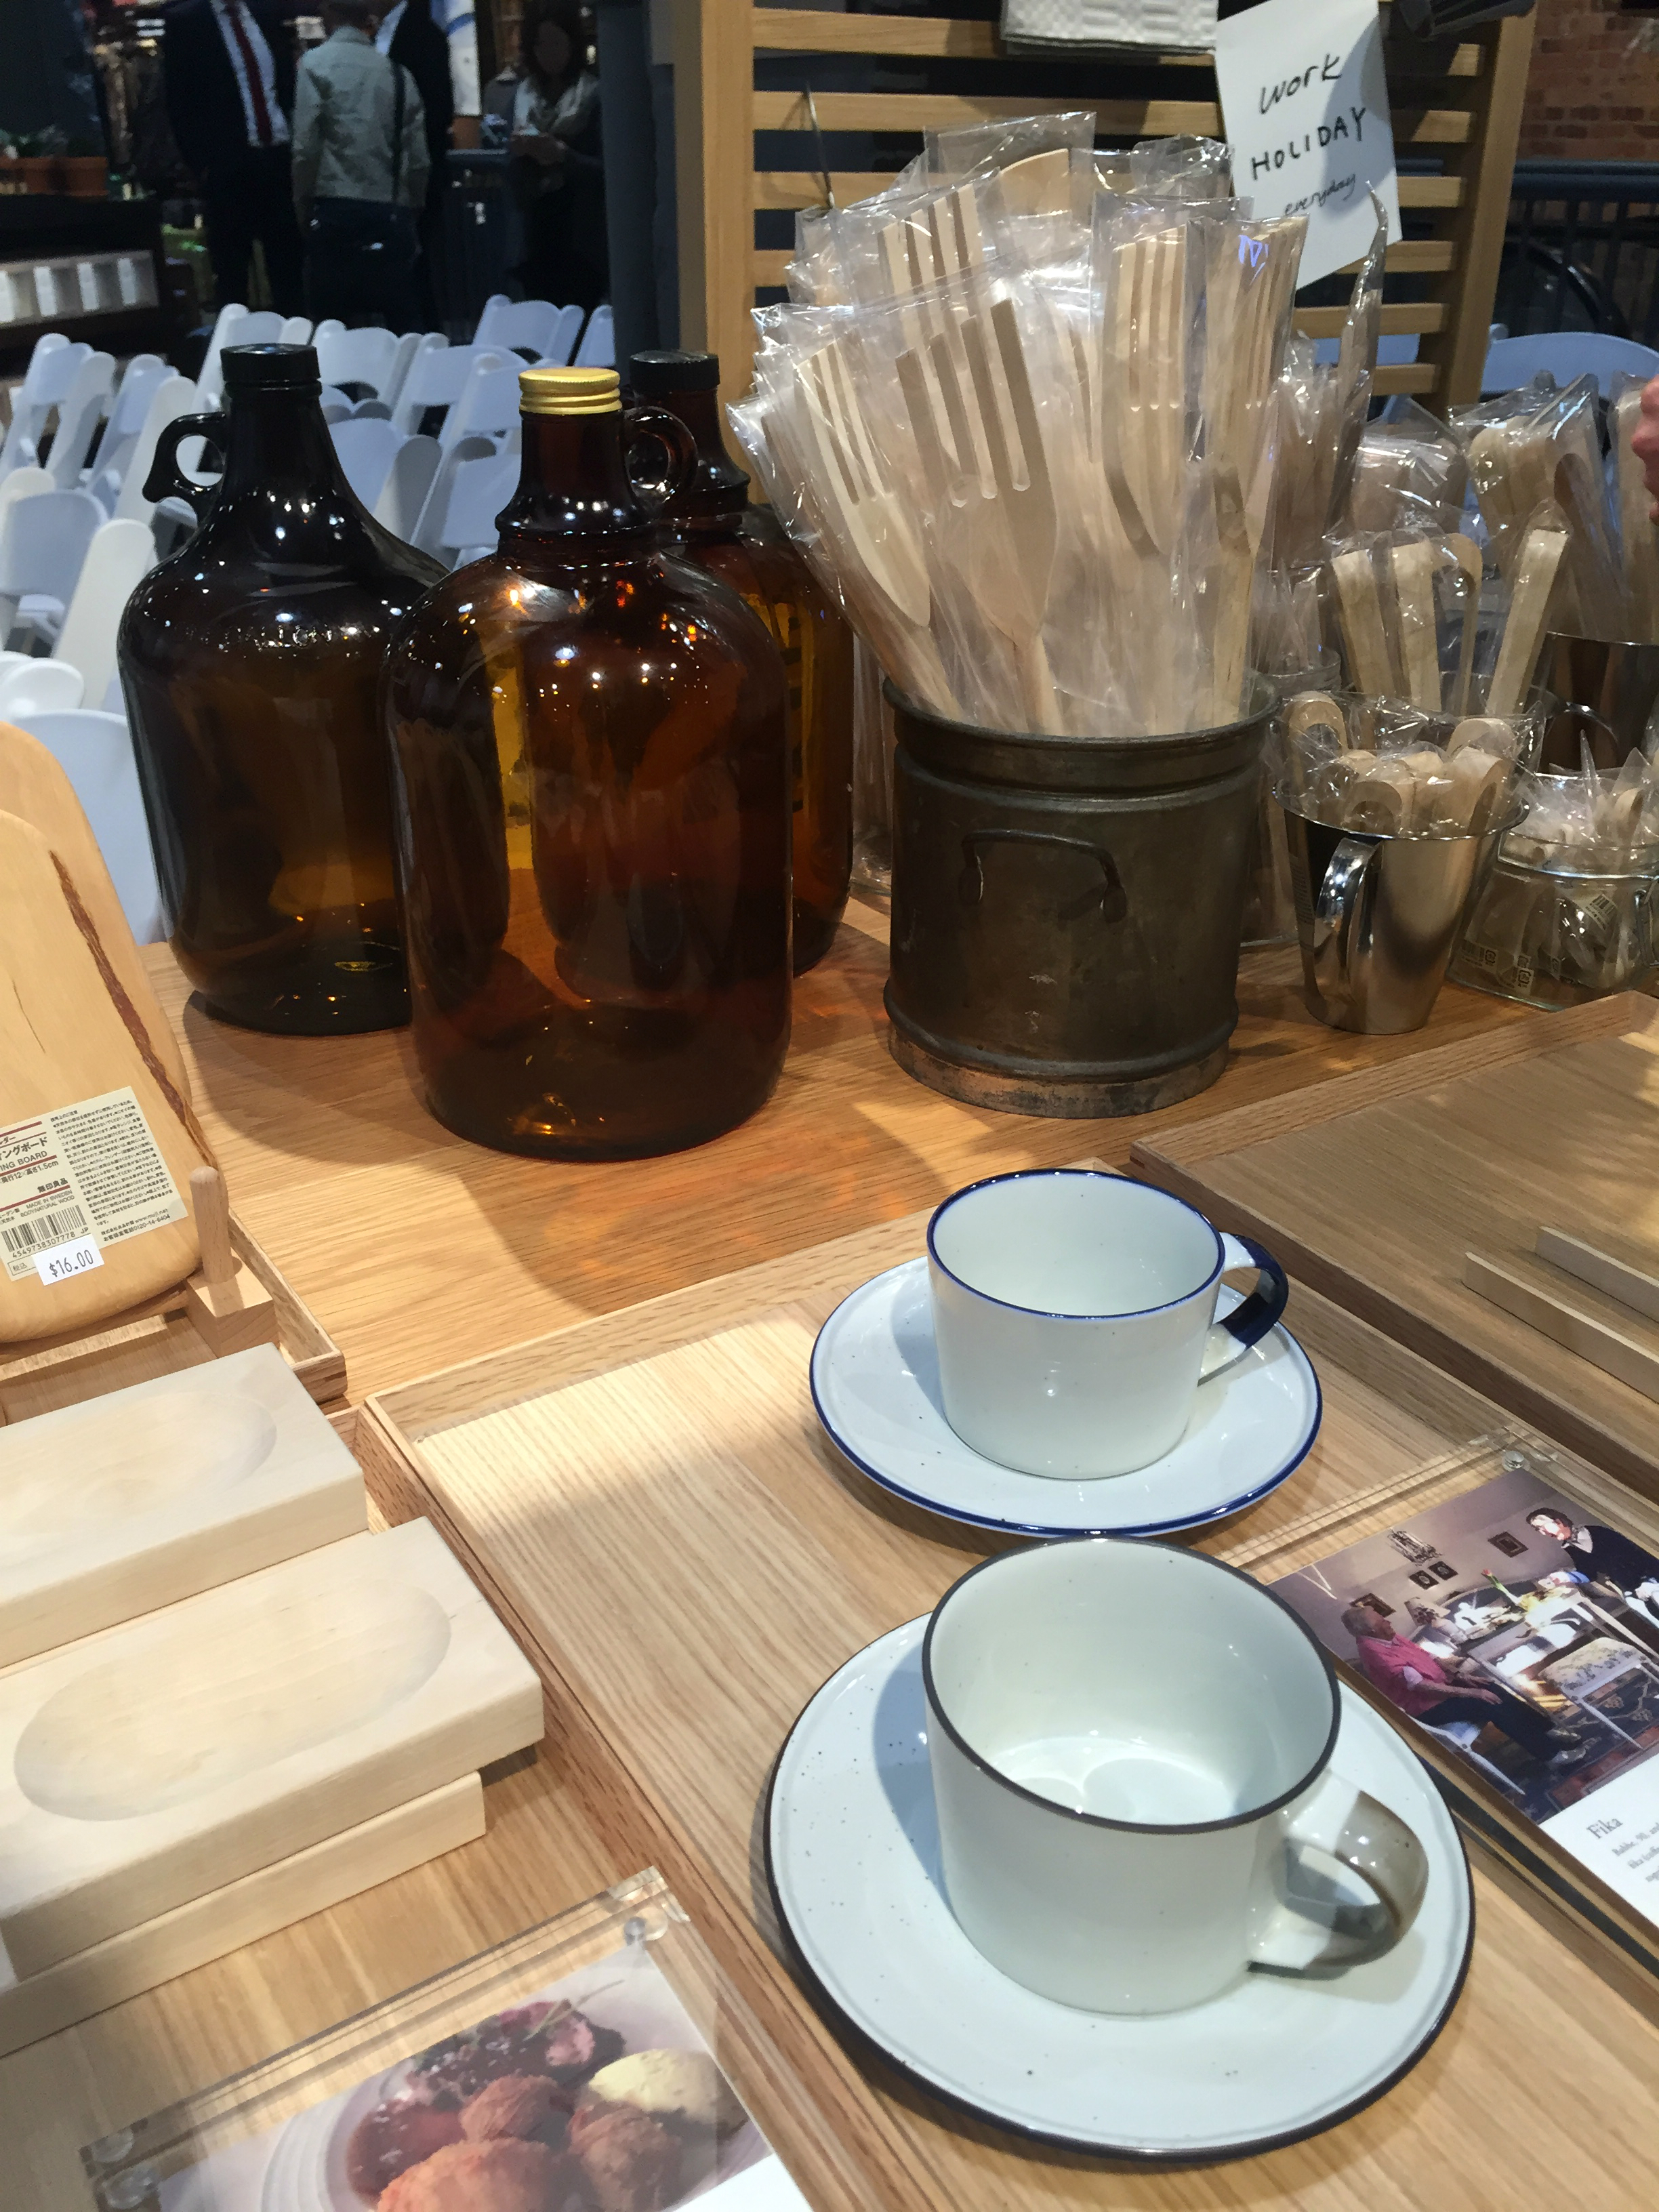 Muji s New Collection Melds Japanese Design and Swedish Tradition